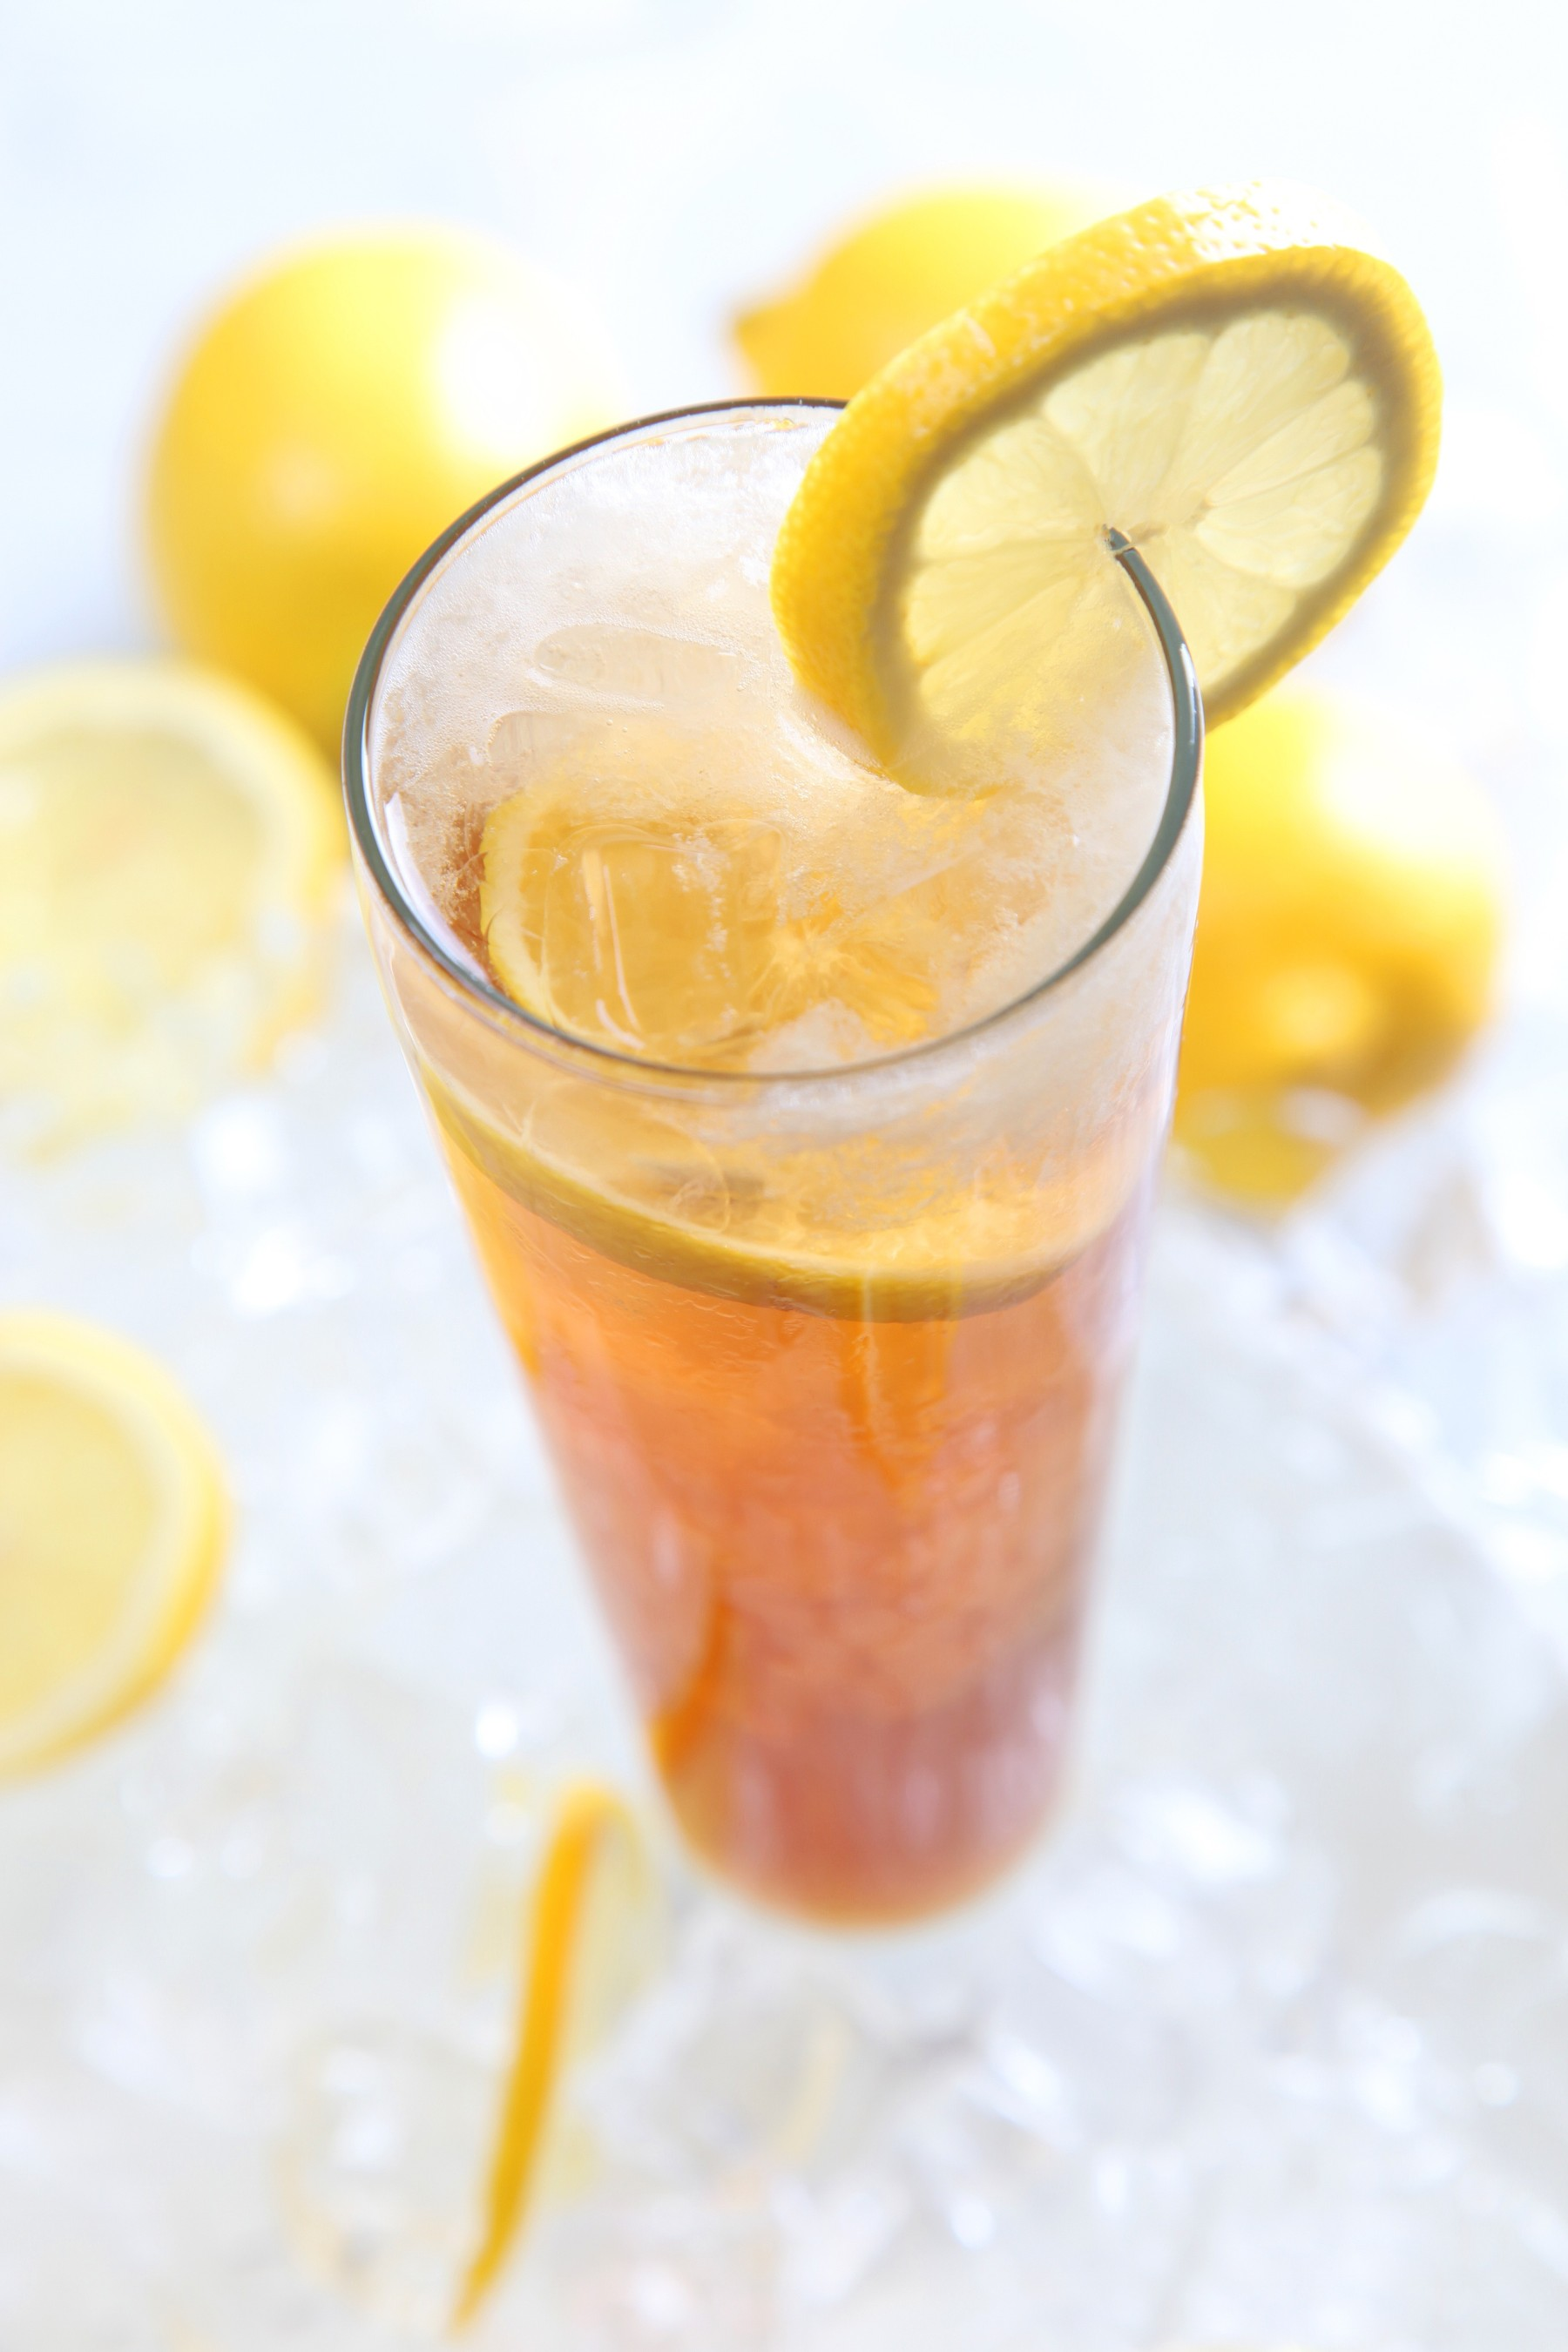 lemon-tea-cold-beverages-summer-offerings-40594